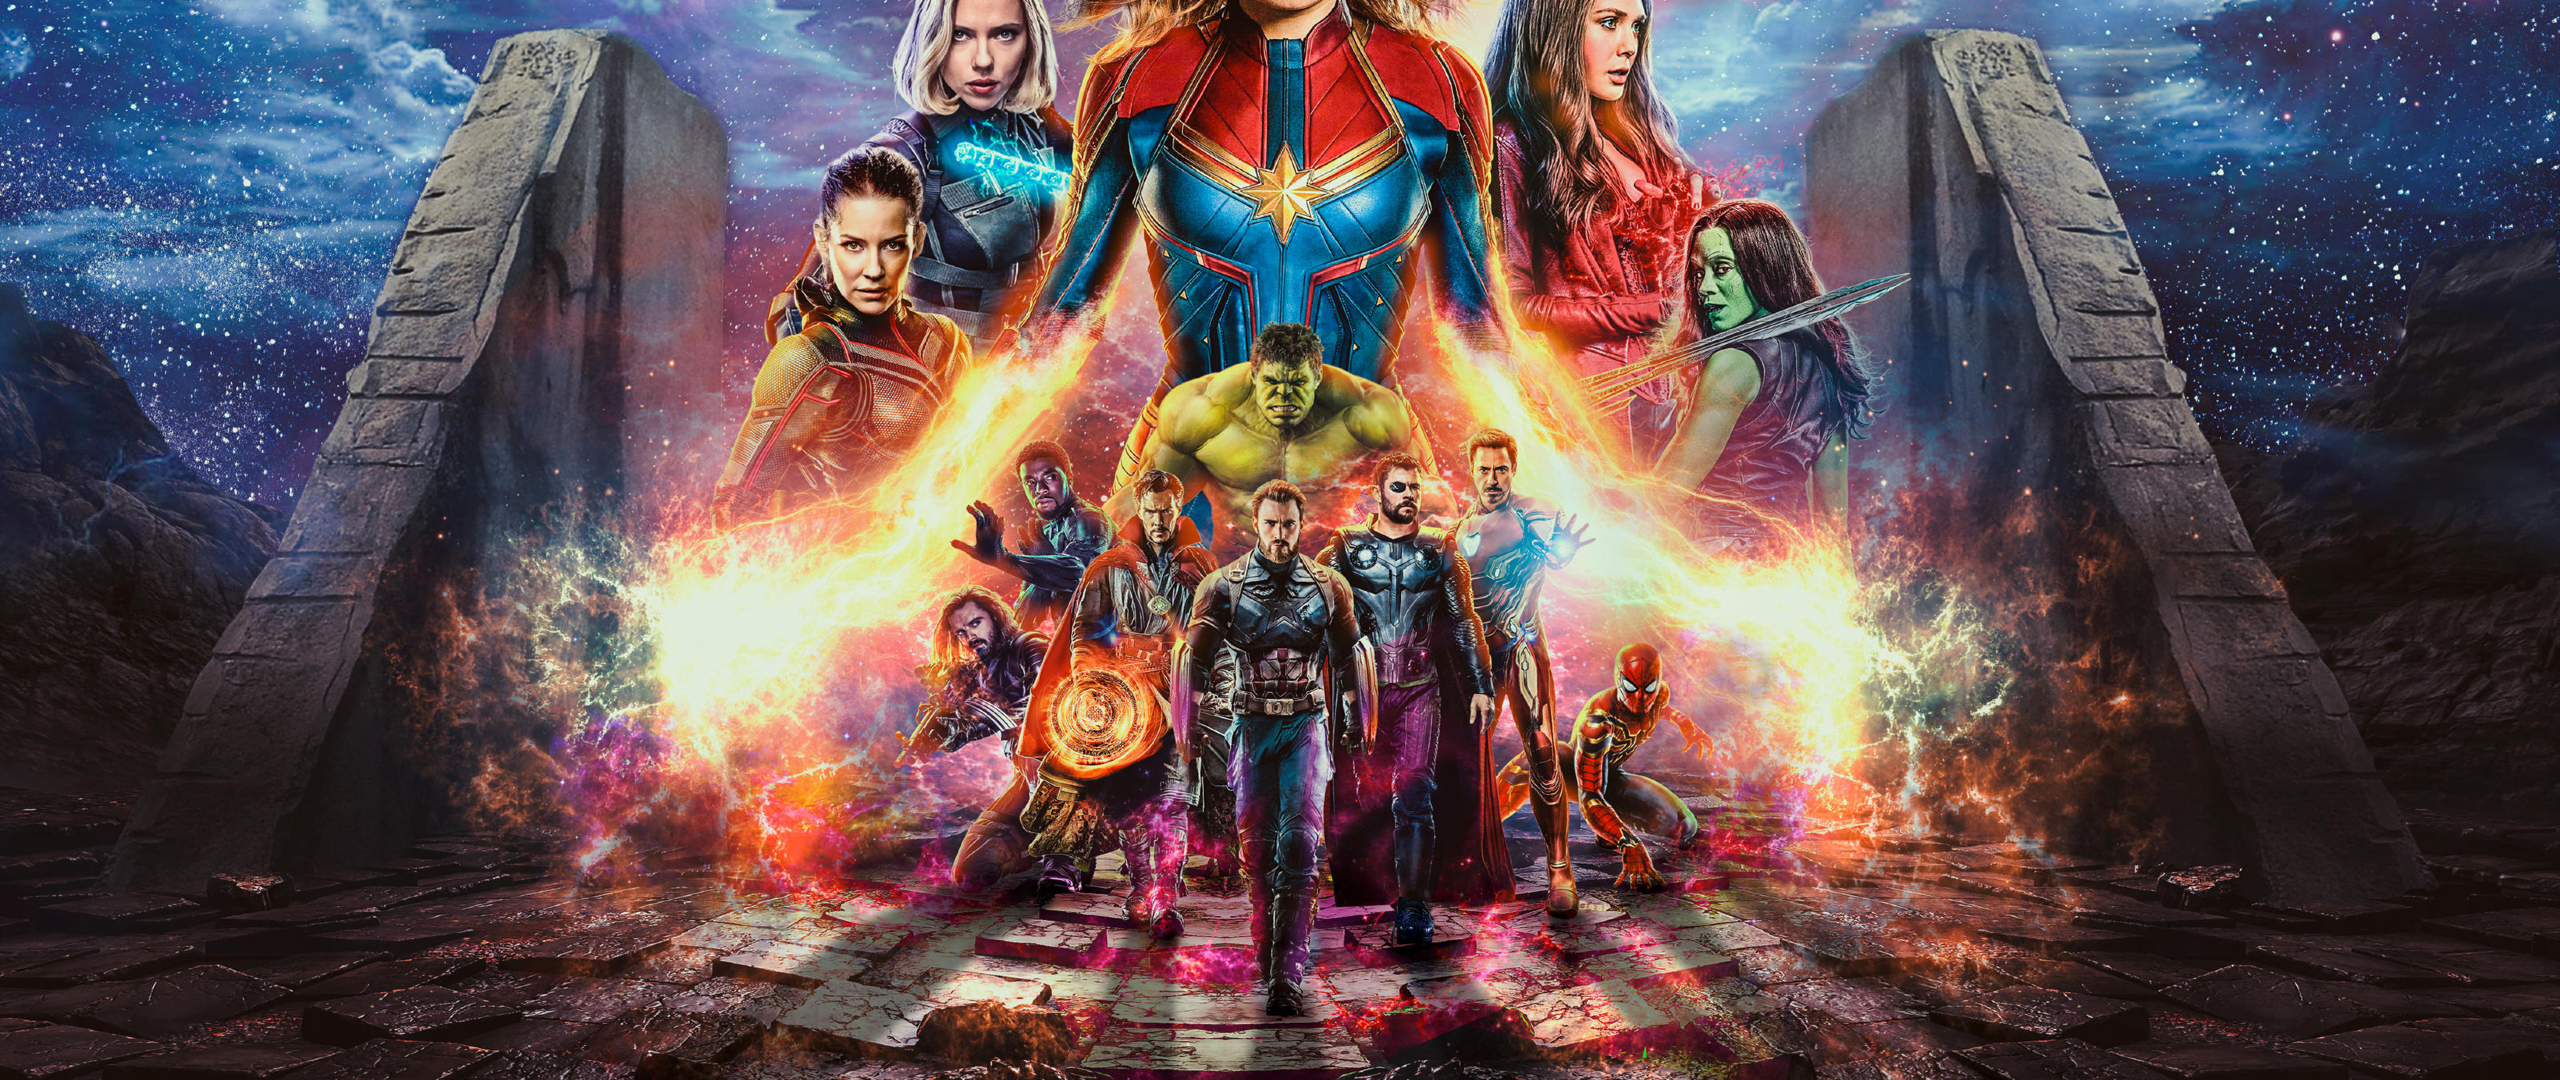 Avenger End Game Picture: Download Avengers End Game 1600x1200 Resolution, HD 4K